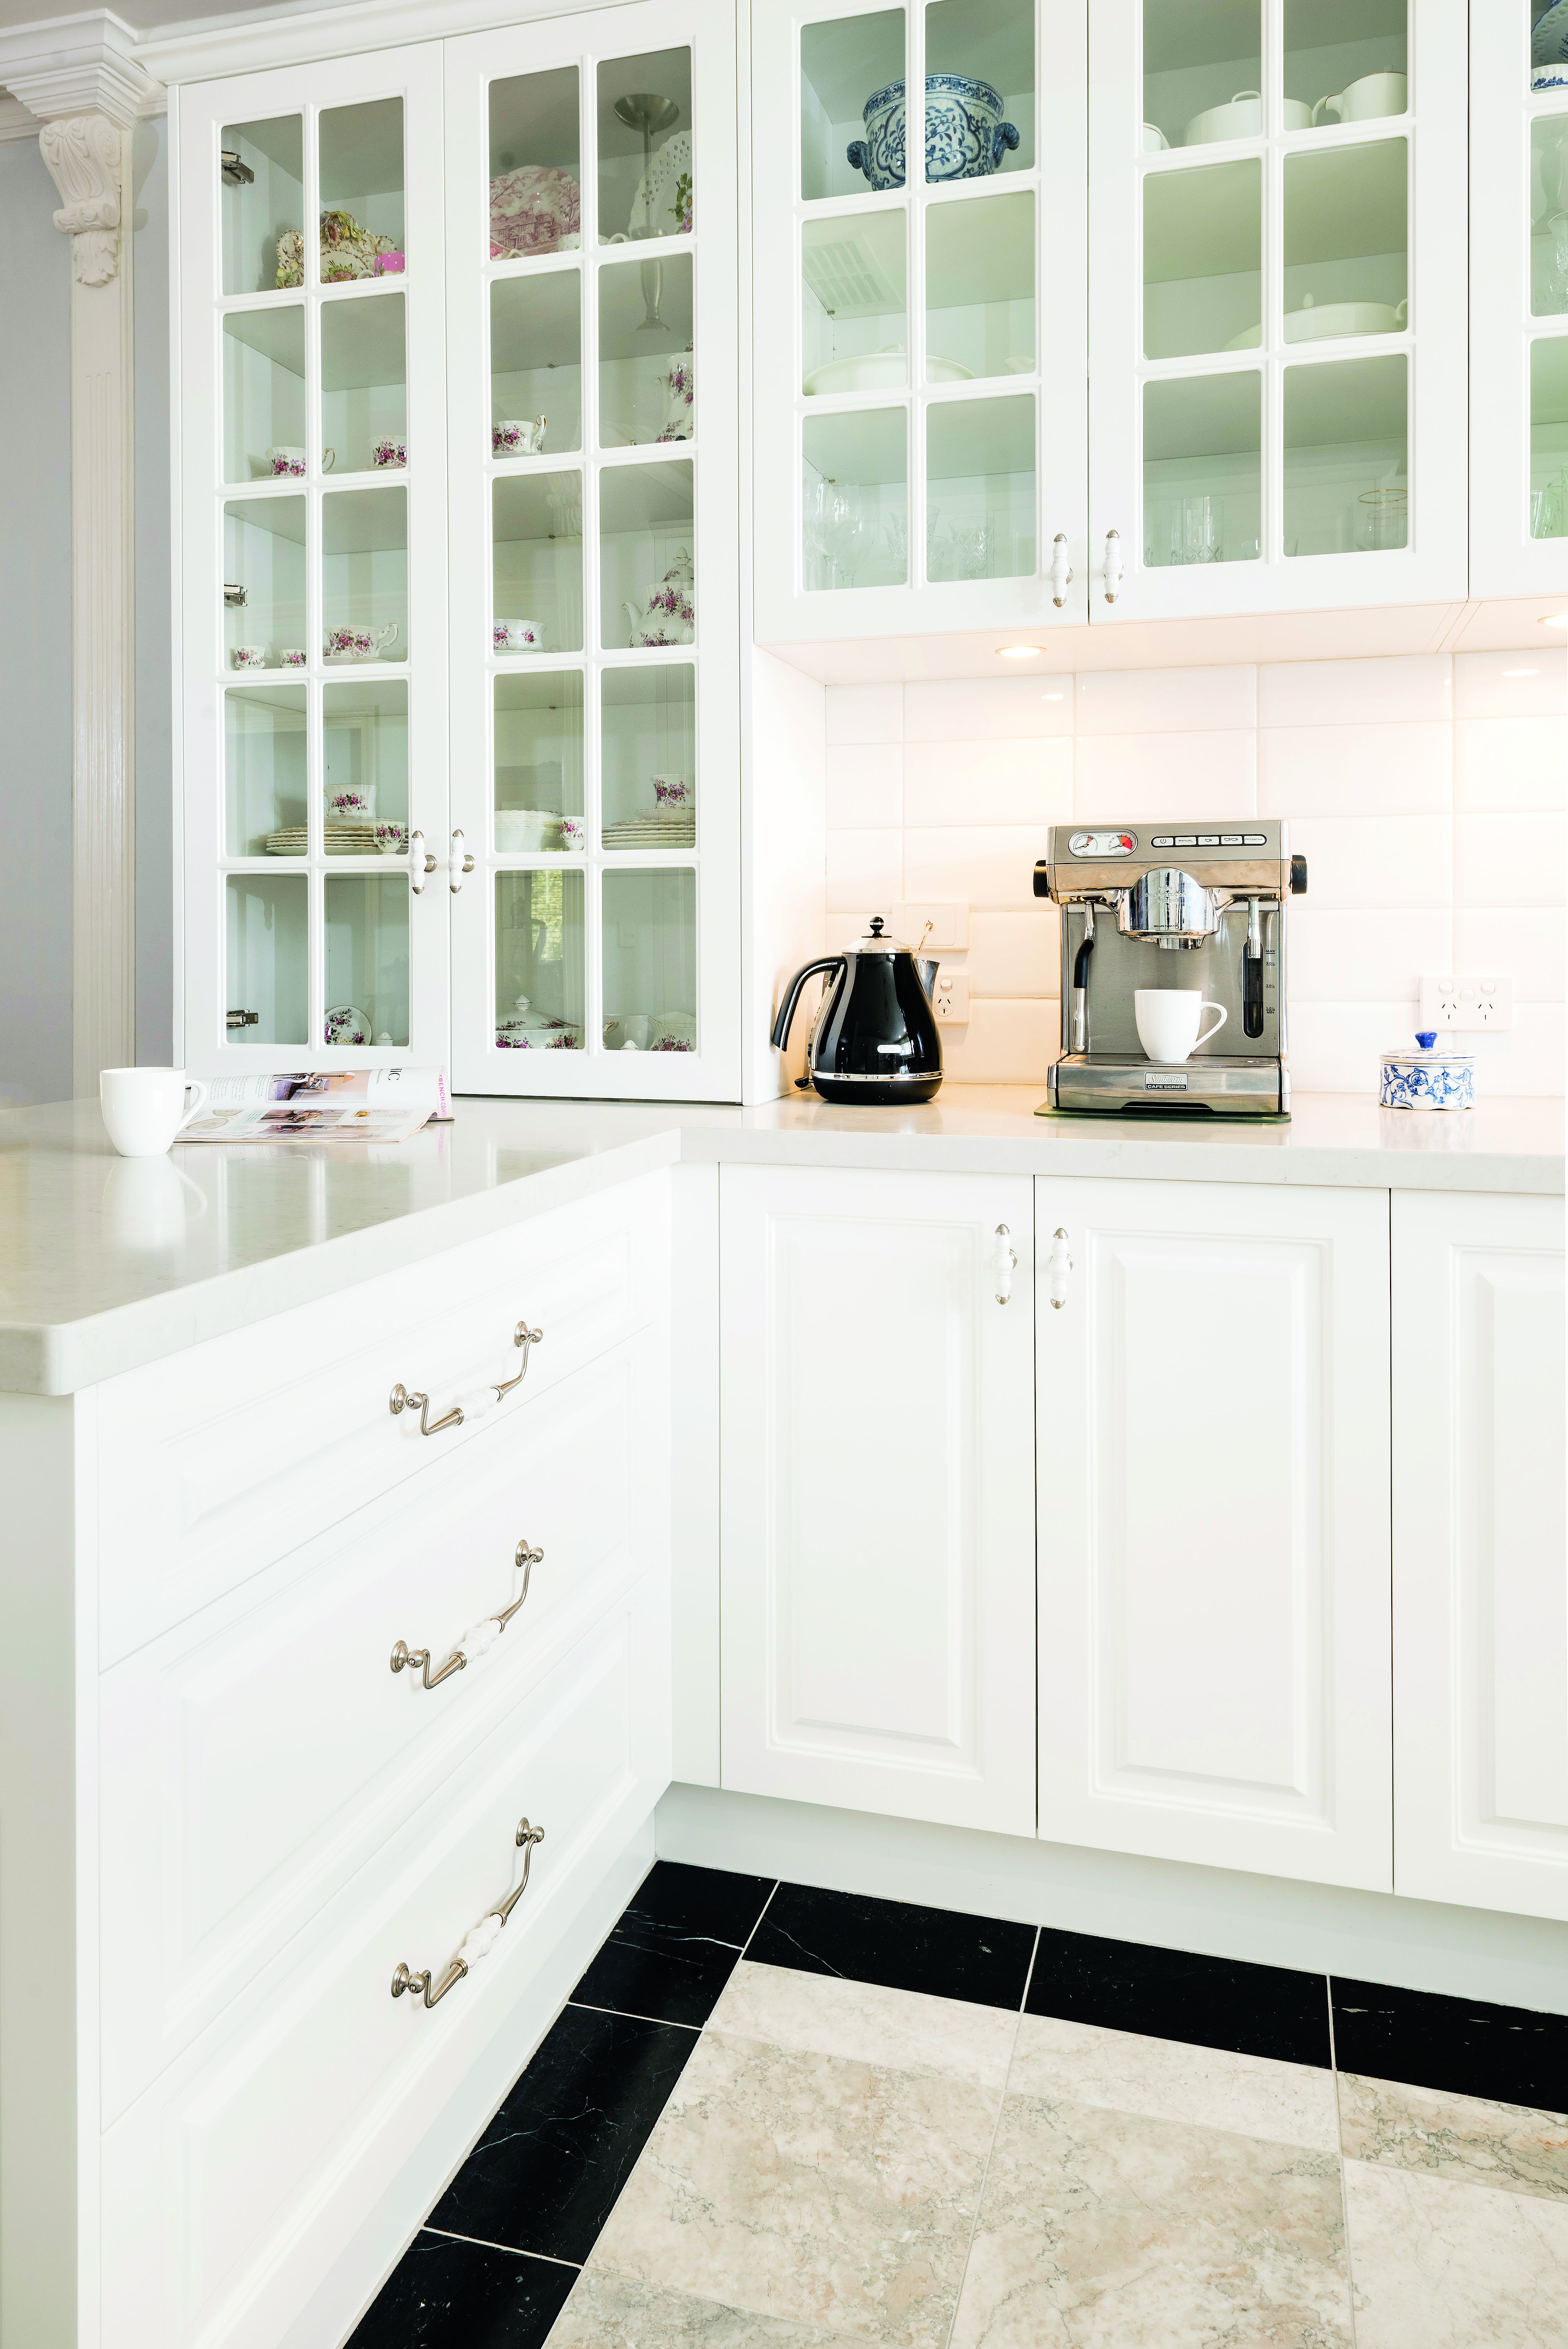 Provincial magic: a country style kitchen - appliances and cabinets